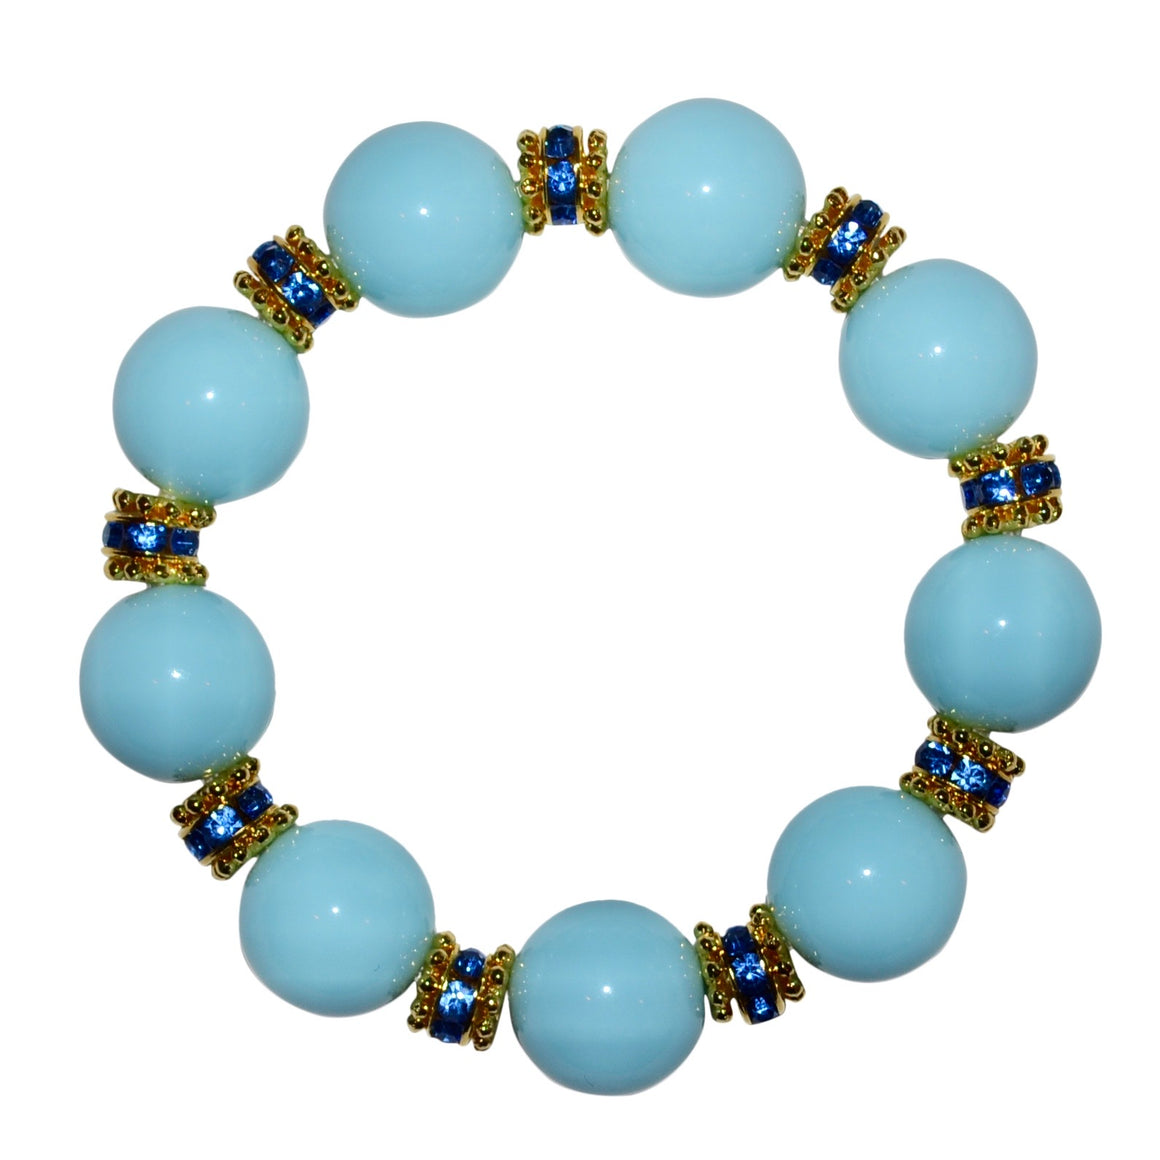 ELLIS ANYTIME BANGLE IN LIGHT BLUE